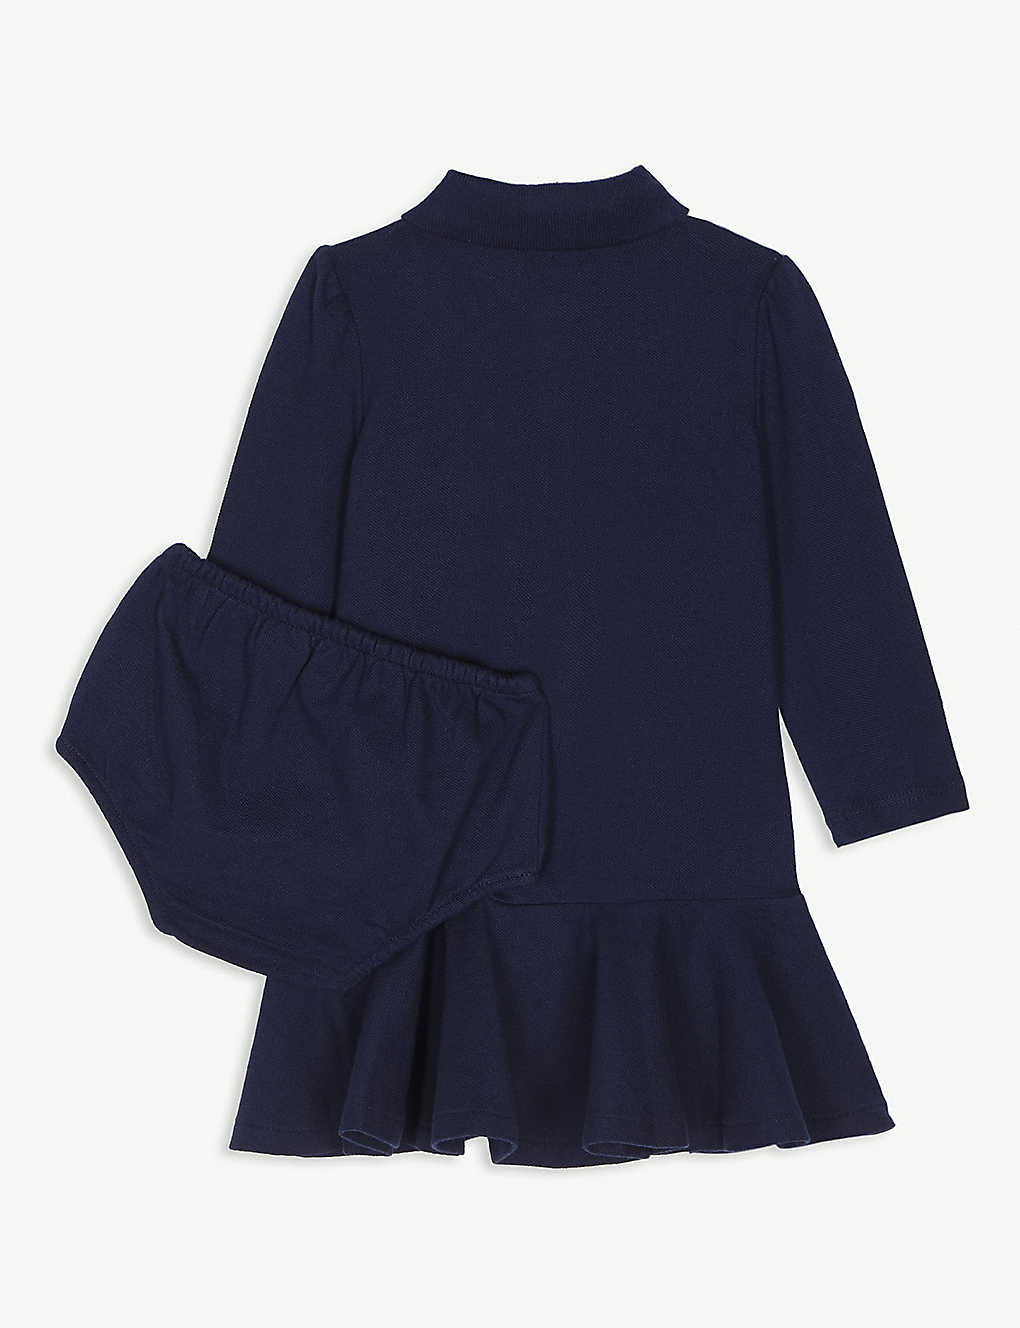 0d1dee48fd RALPH LAUREN - Pony pique-cotton polo dress 3-24 months | Selfridges.com